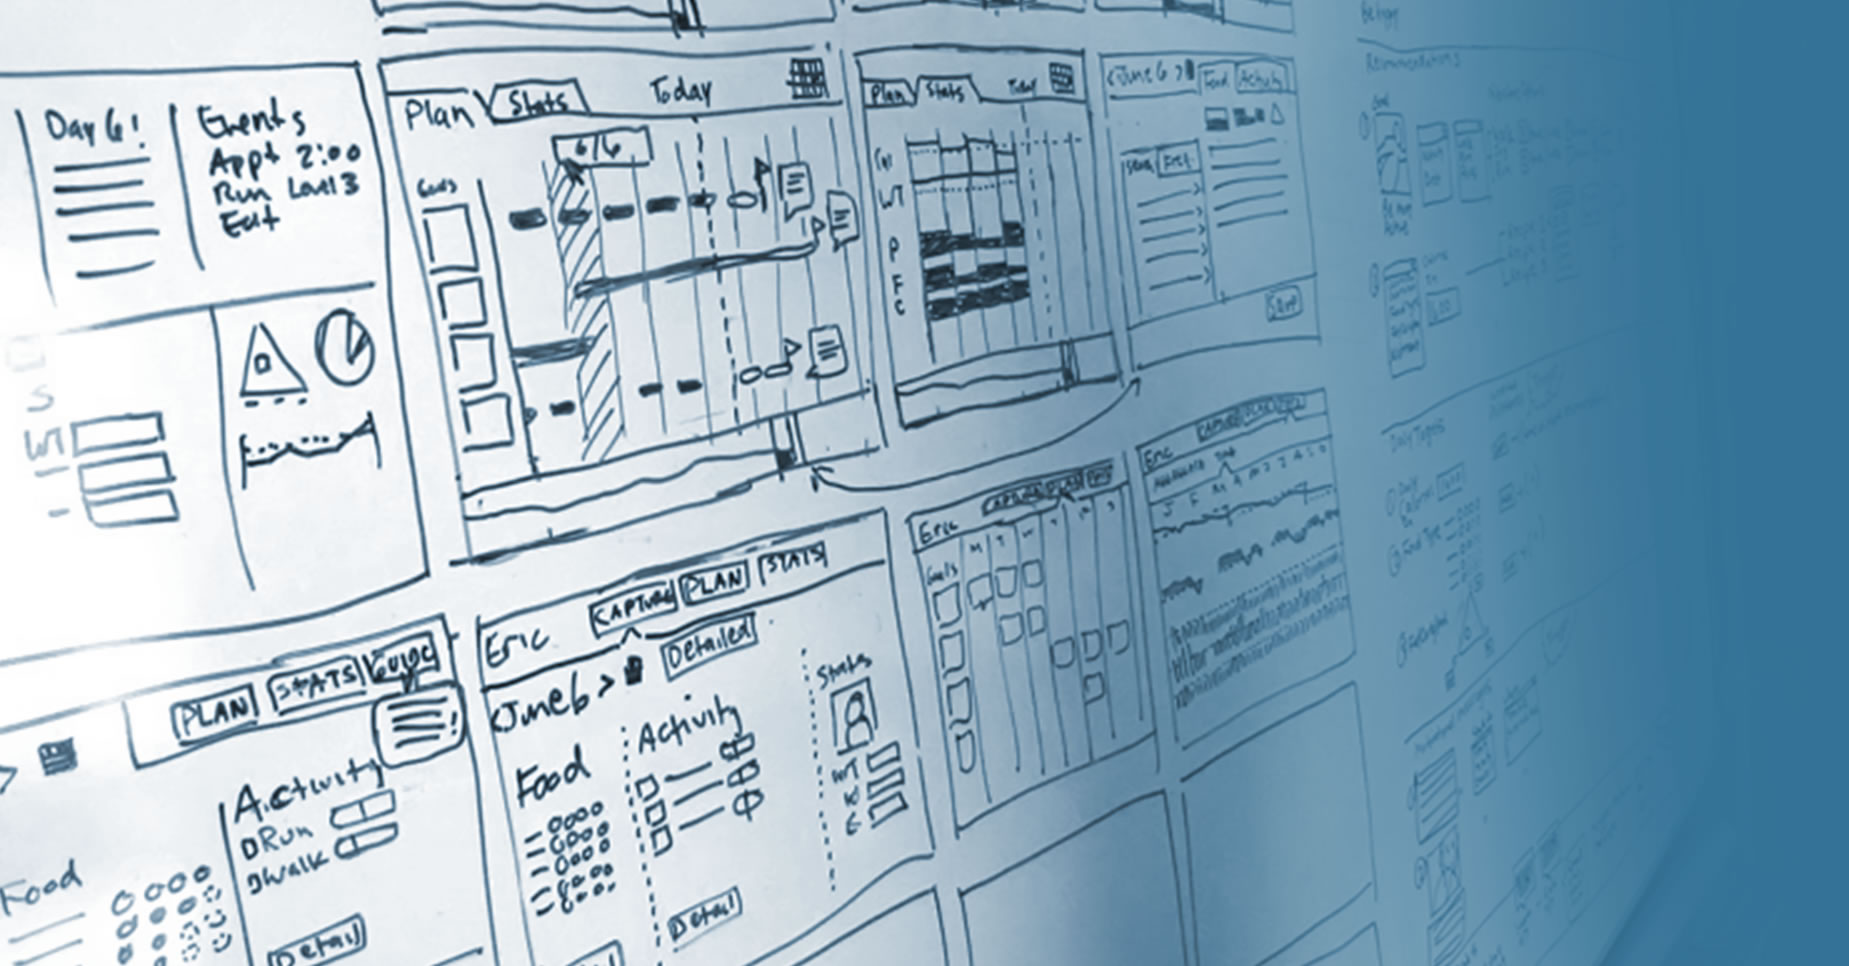 Design wireframes